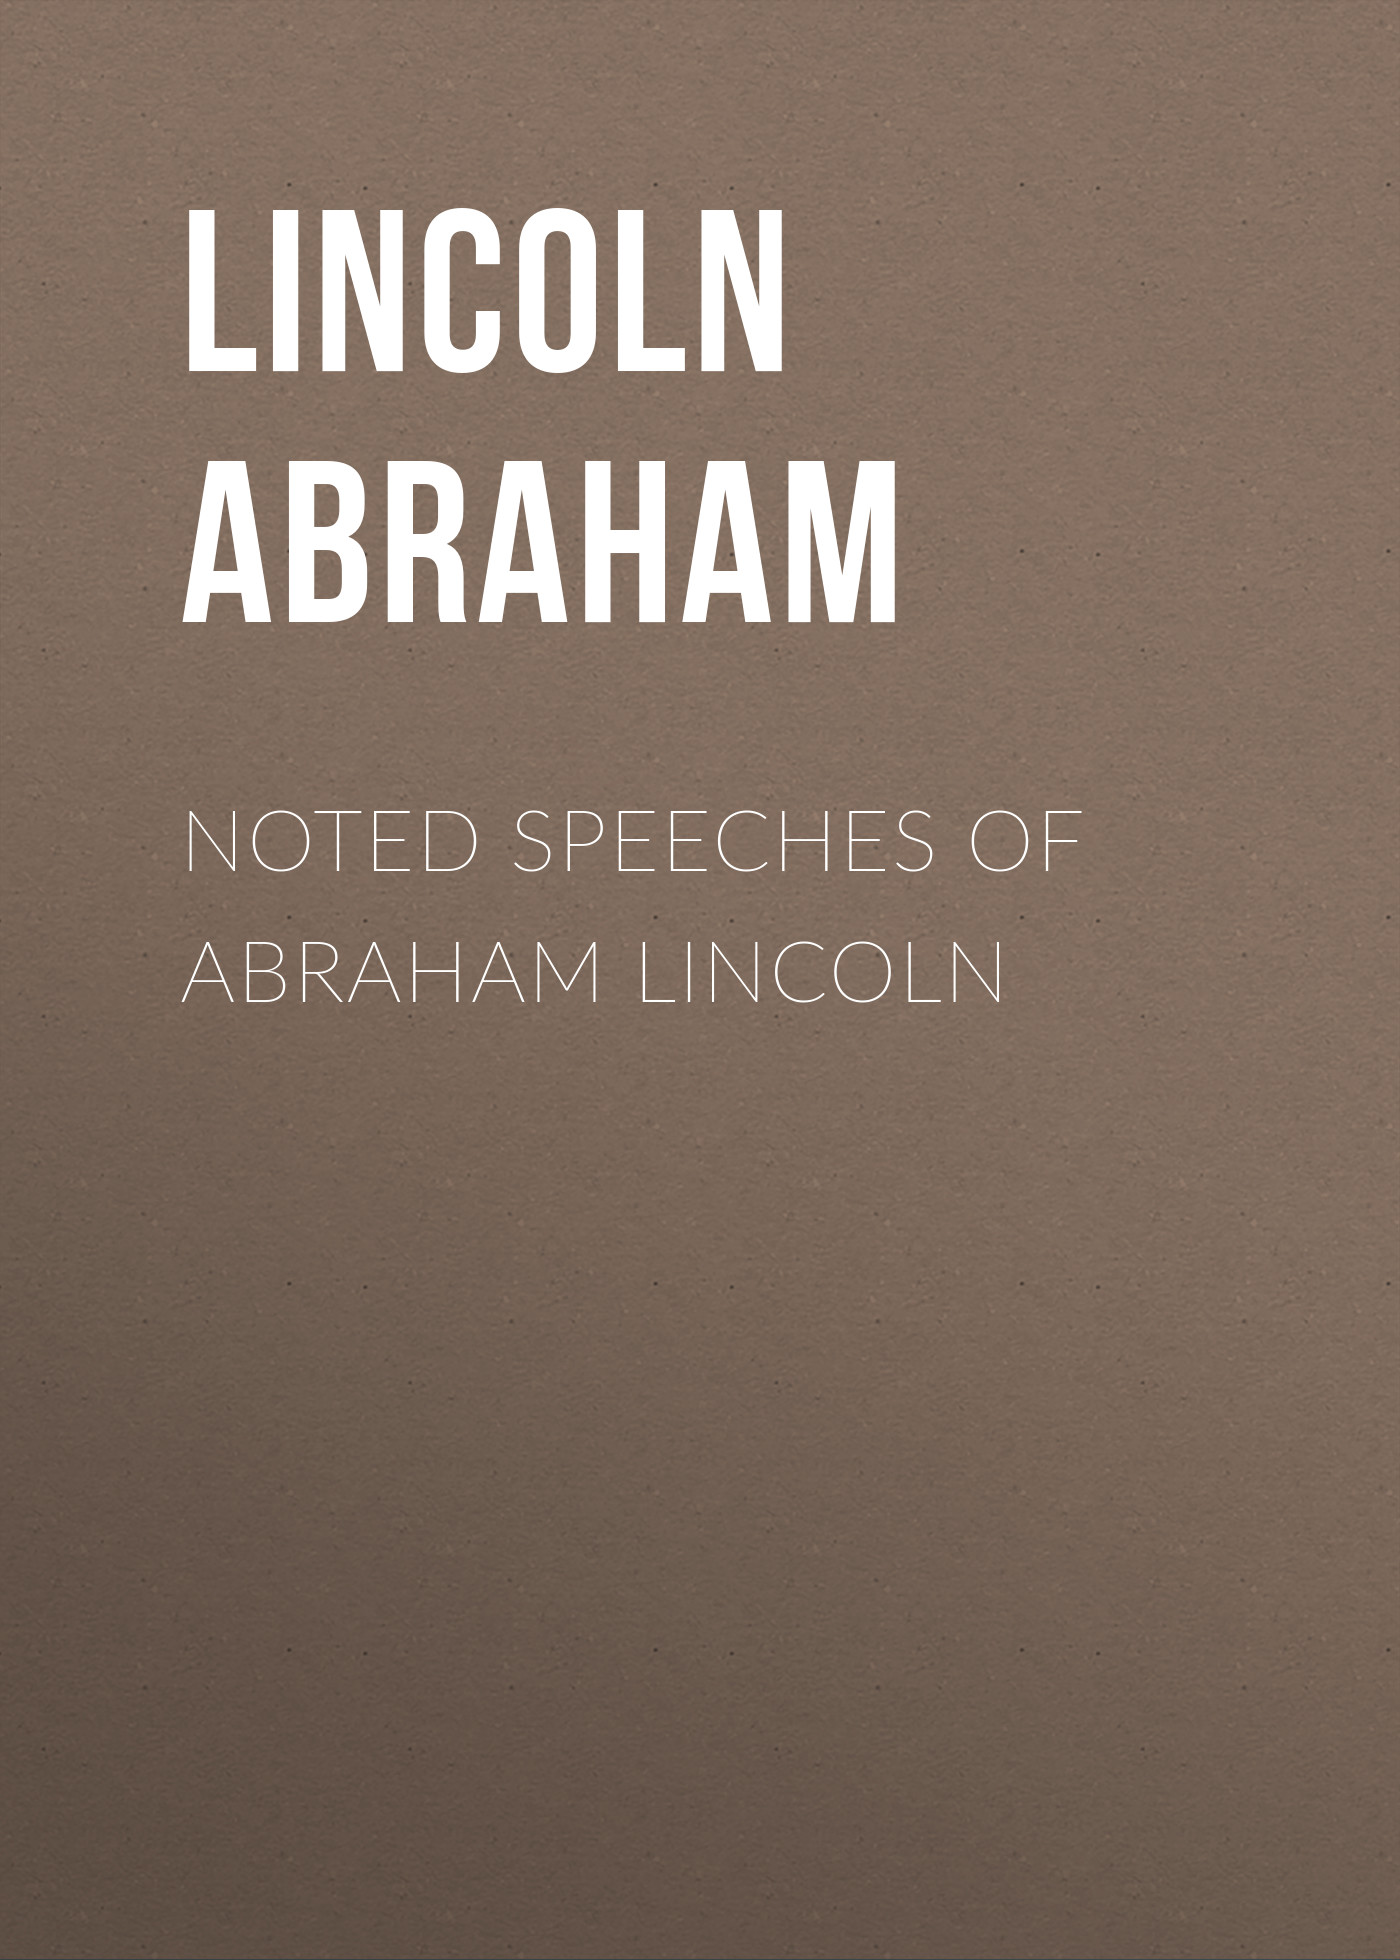 Lincoln Abraham Noted Speeches of Abraham Lincoln speeches of note